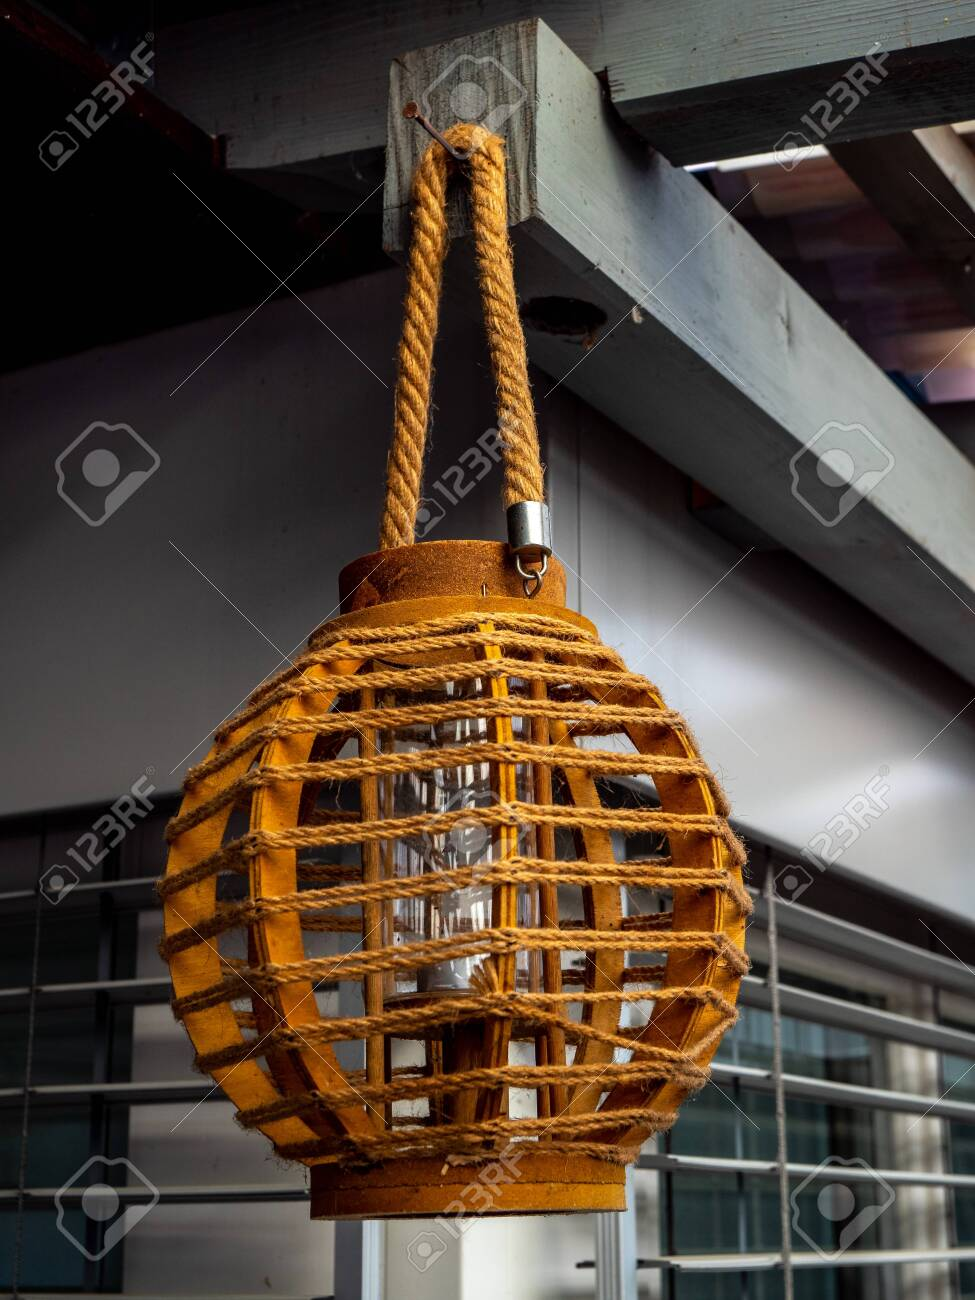 cool outdoor lamp hanging from the roof wood - 120999291